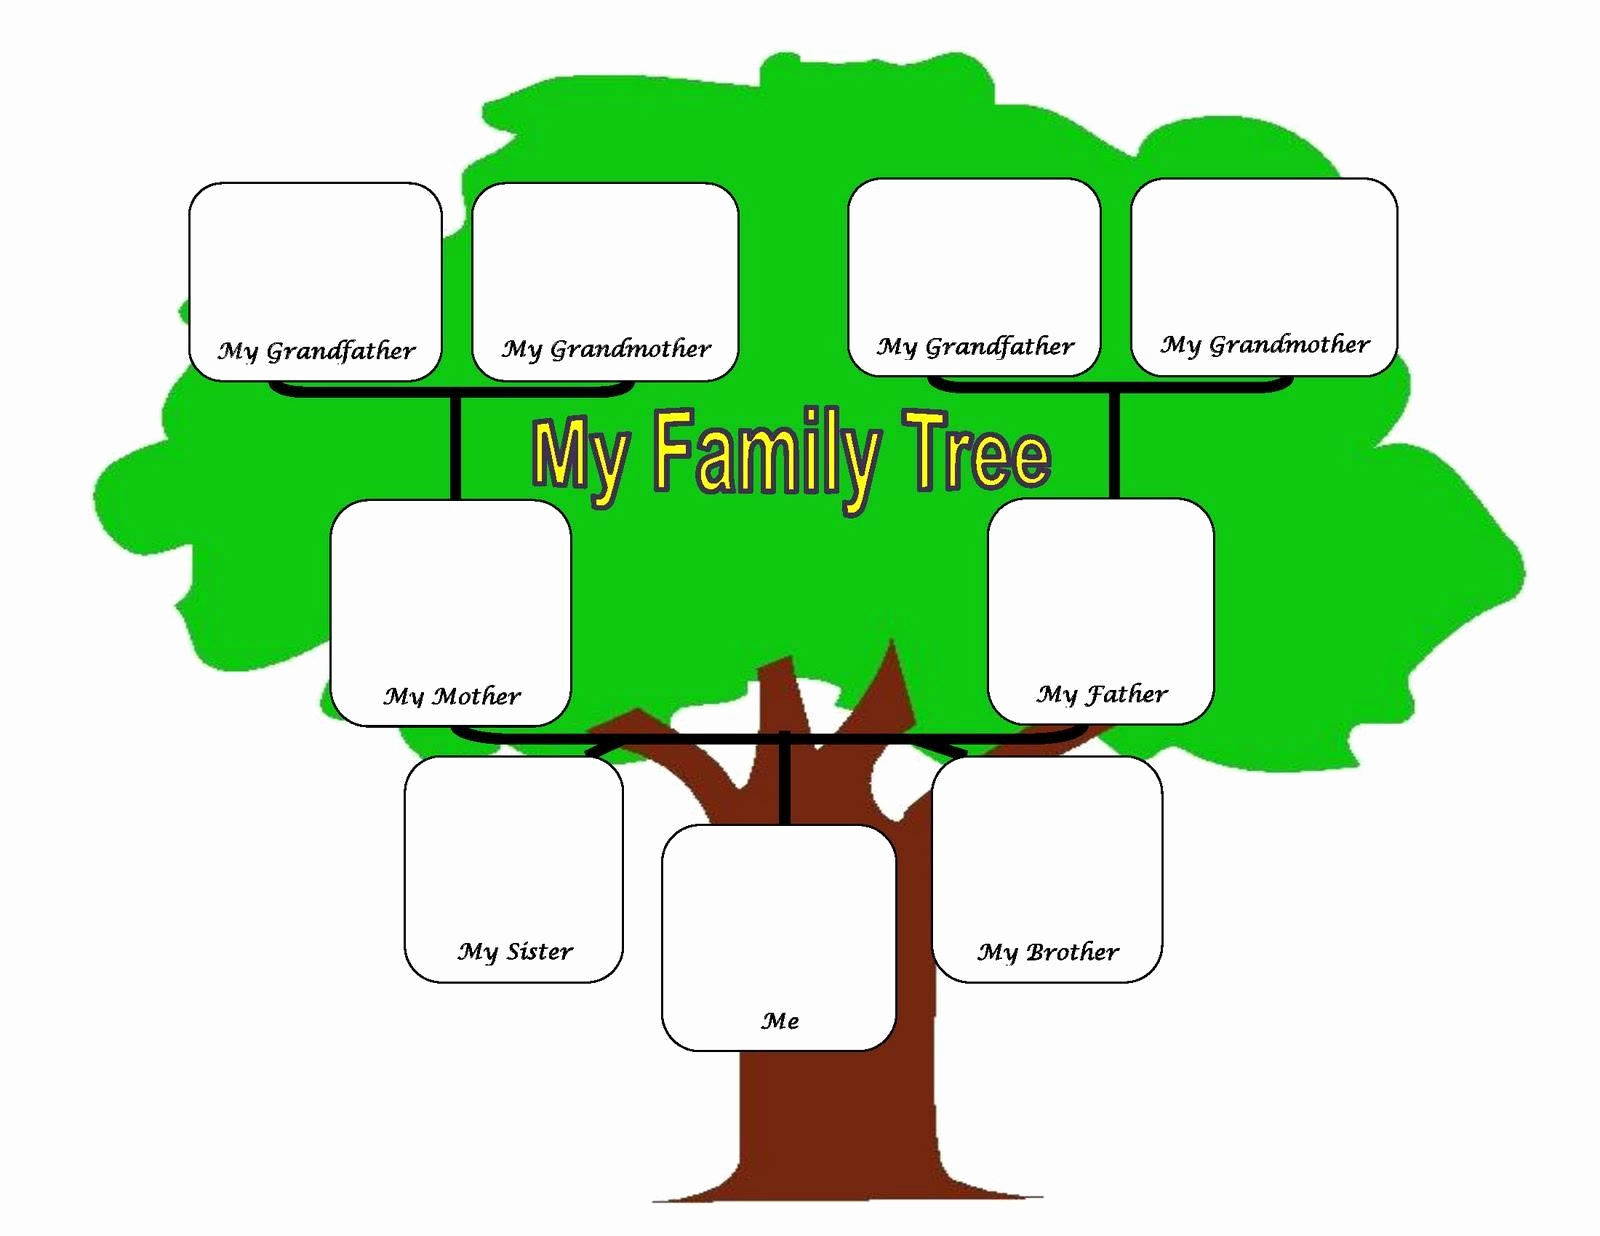 Simple Family Tree Template Best Of Family Tree Fotolip Rich Image and Wallpaper